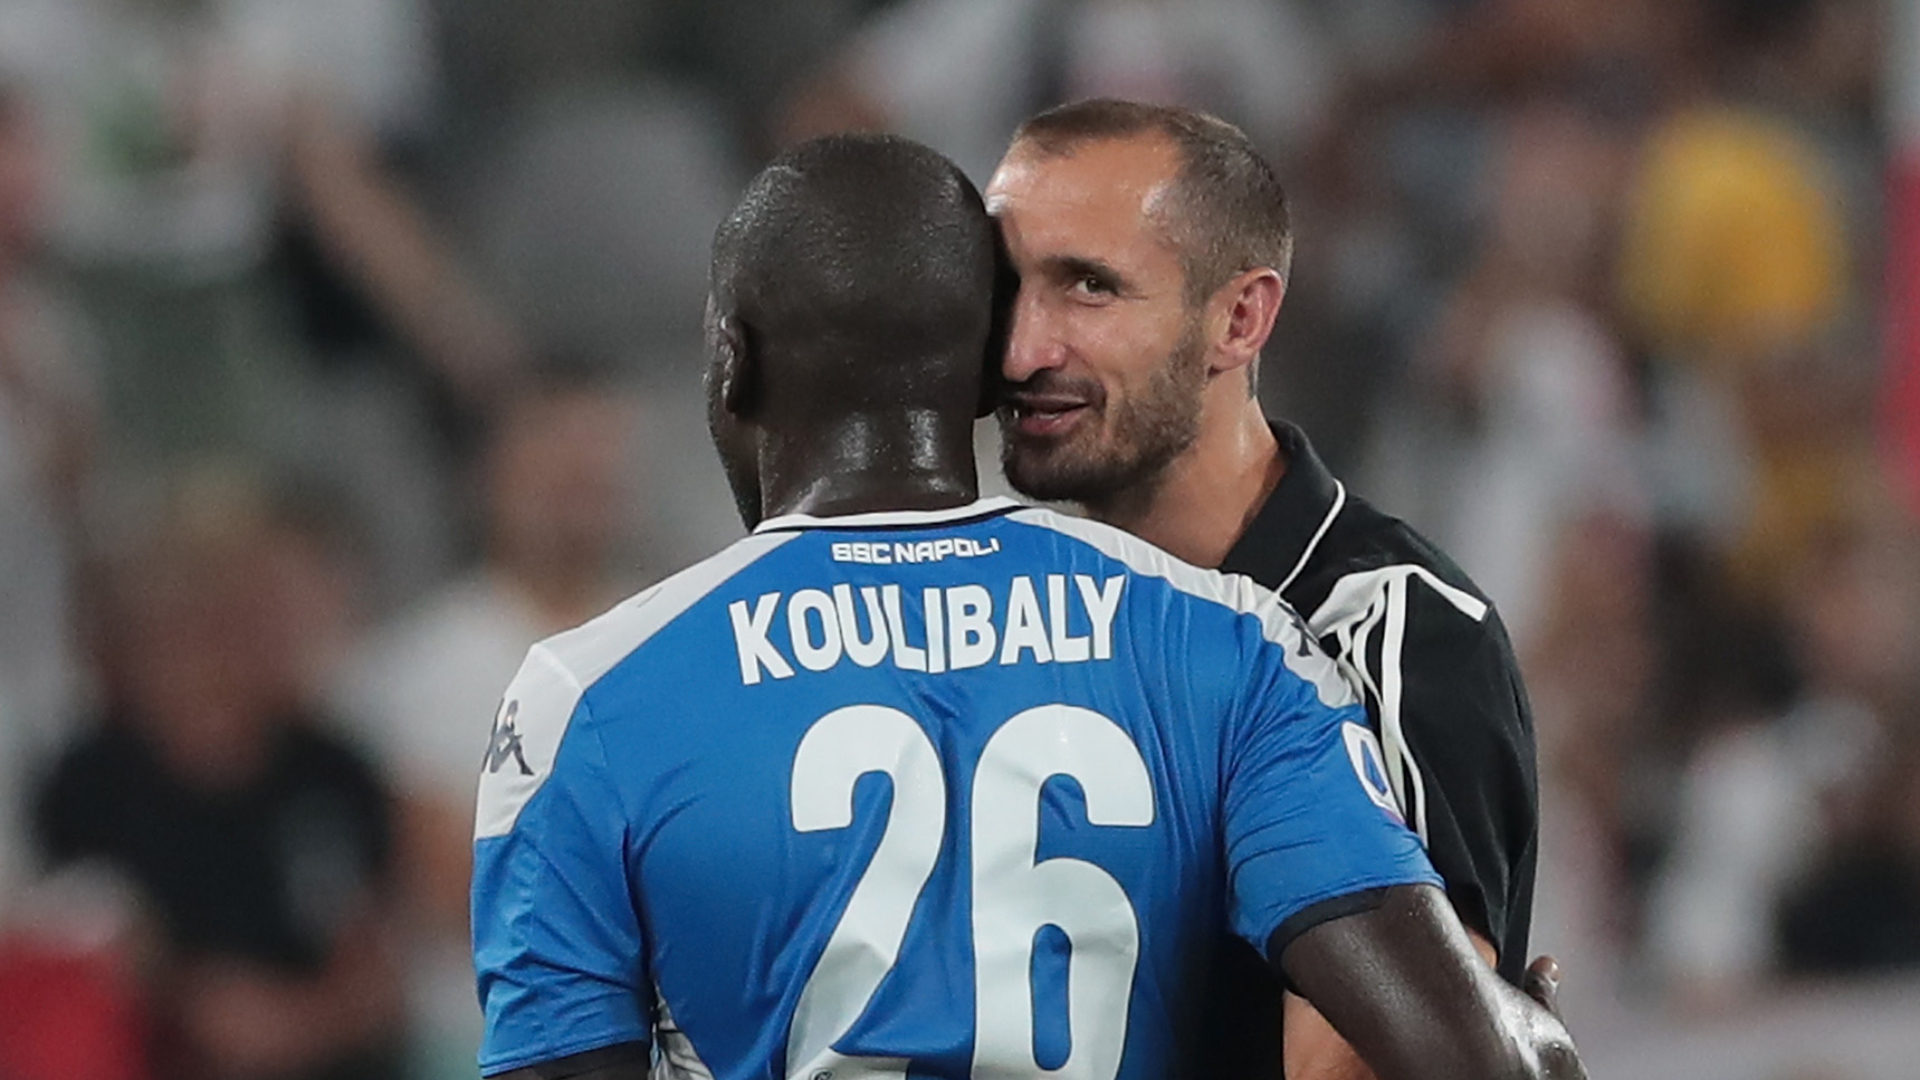 Napoli identify potential Koulibaly replacement